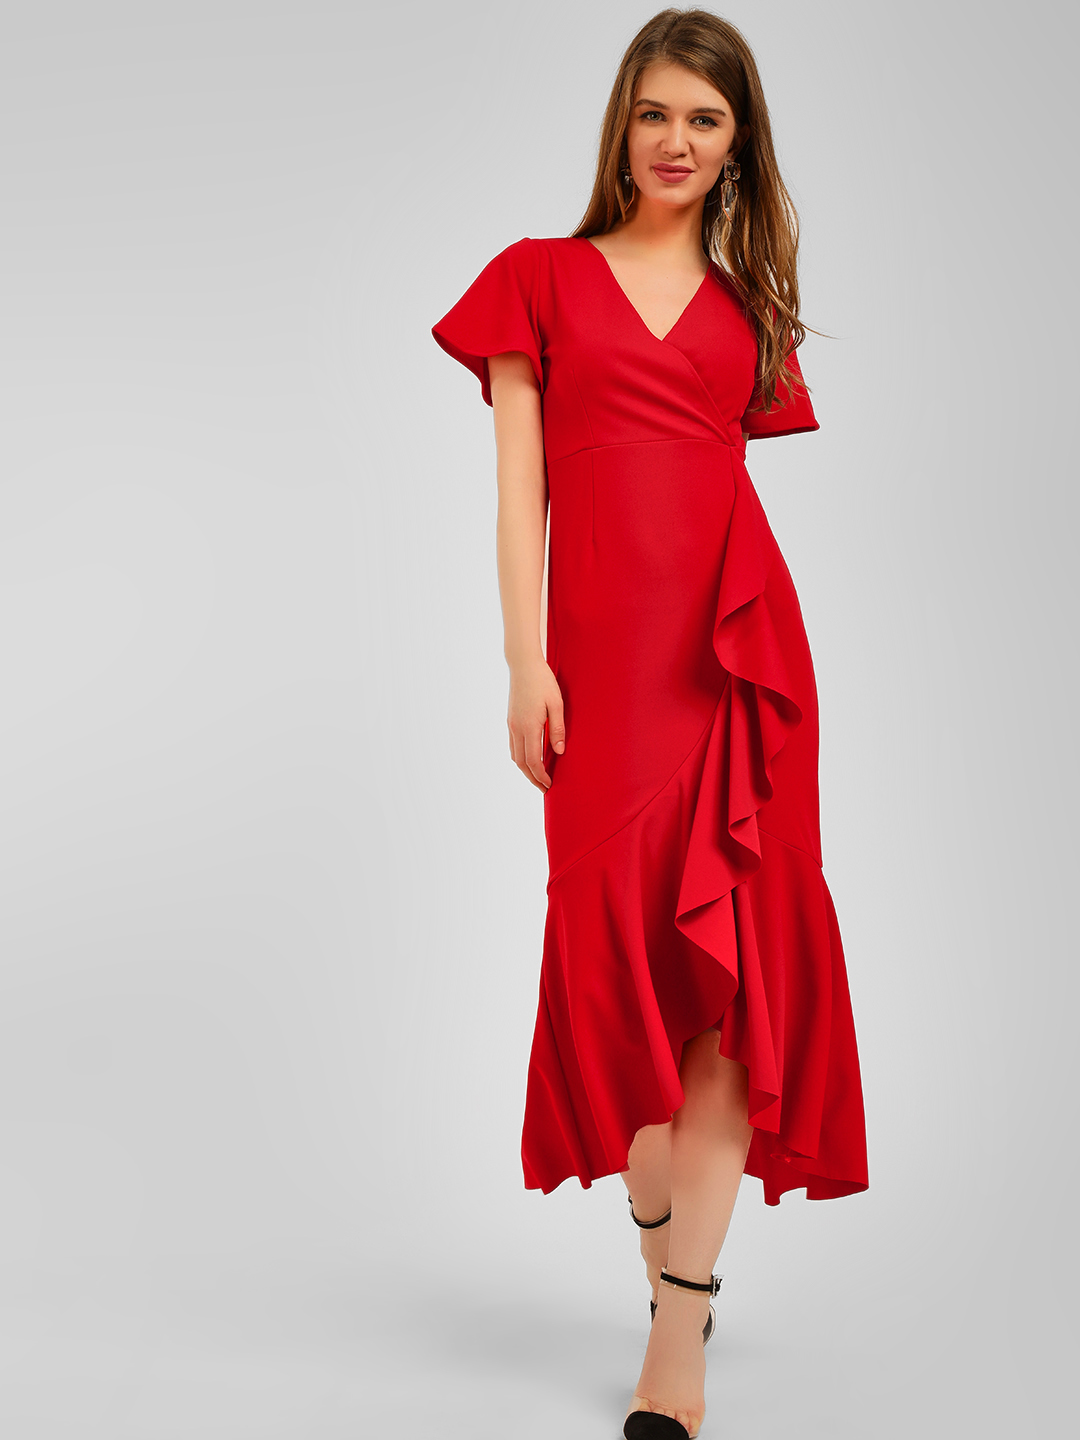 Origami Lily Red Wrap Front Frill Midi Dress 1